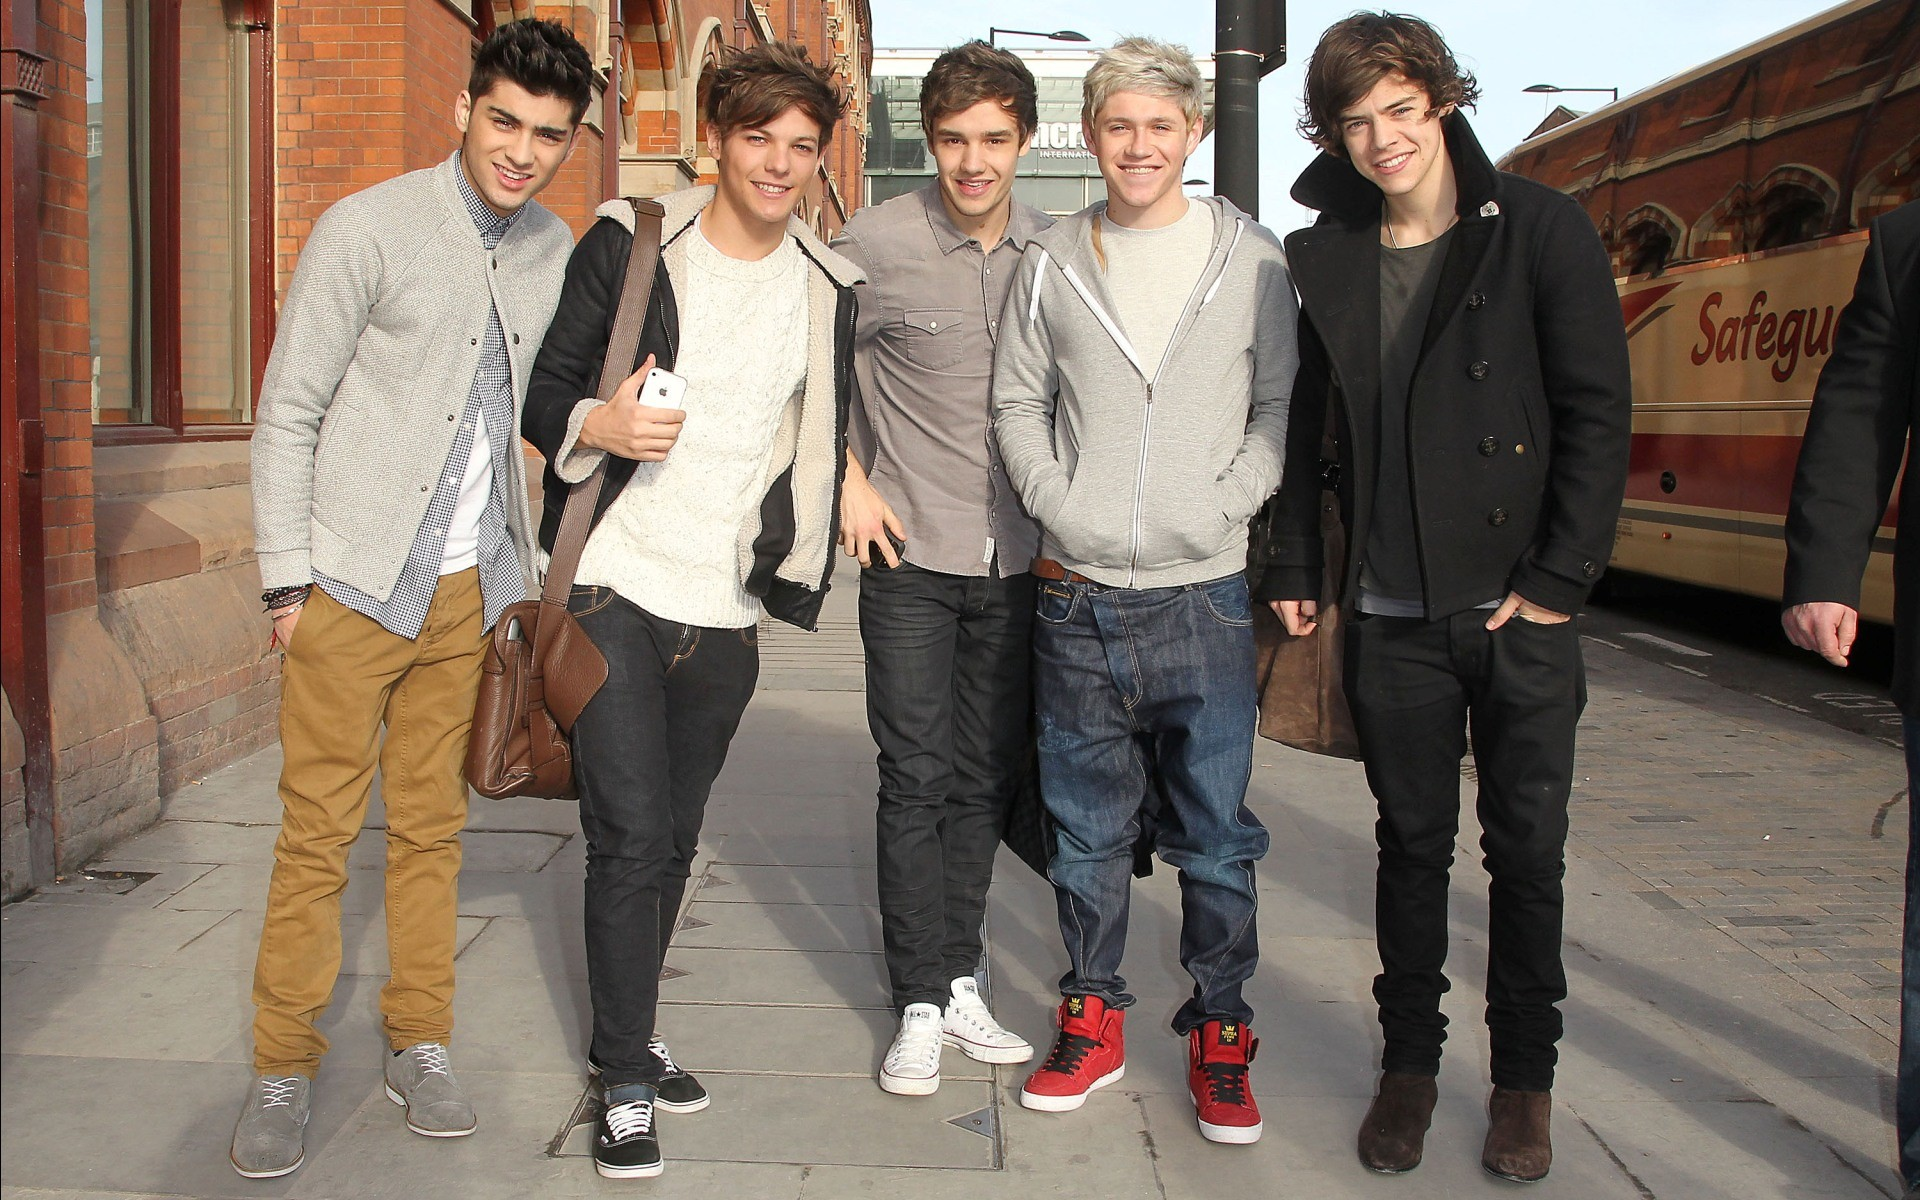 Awesome 1D Background.